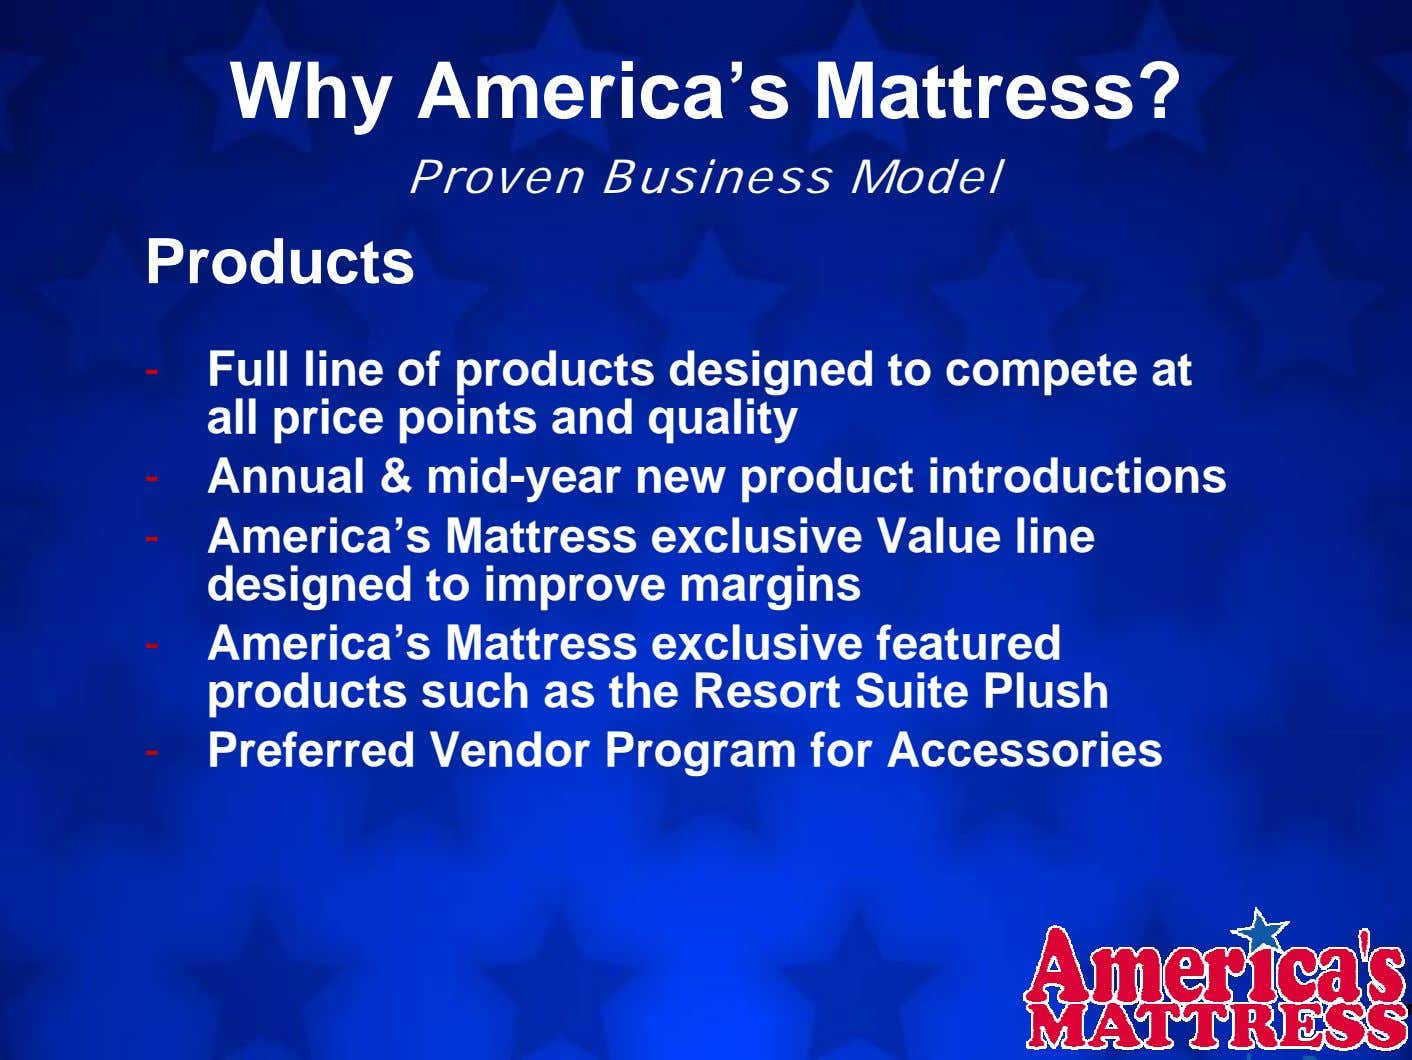 Why America's Mattress? Proven Business Model Products - Full line of products designed to compete